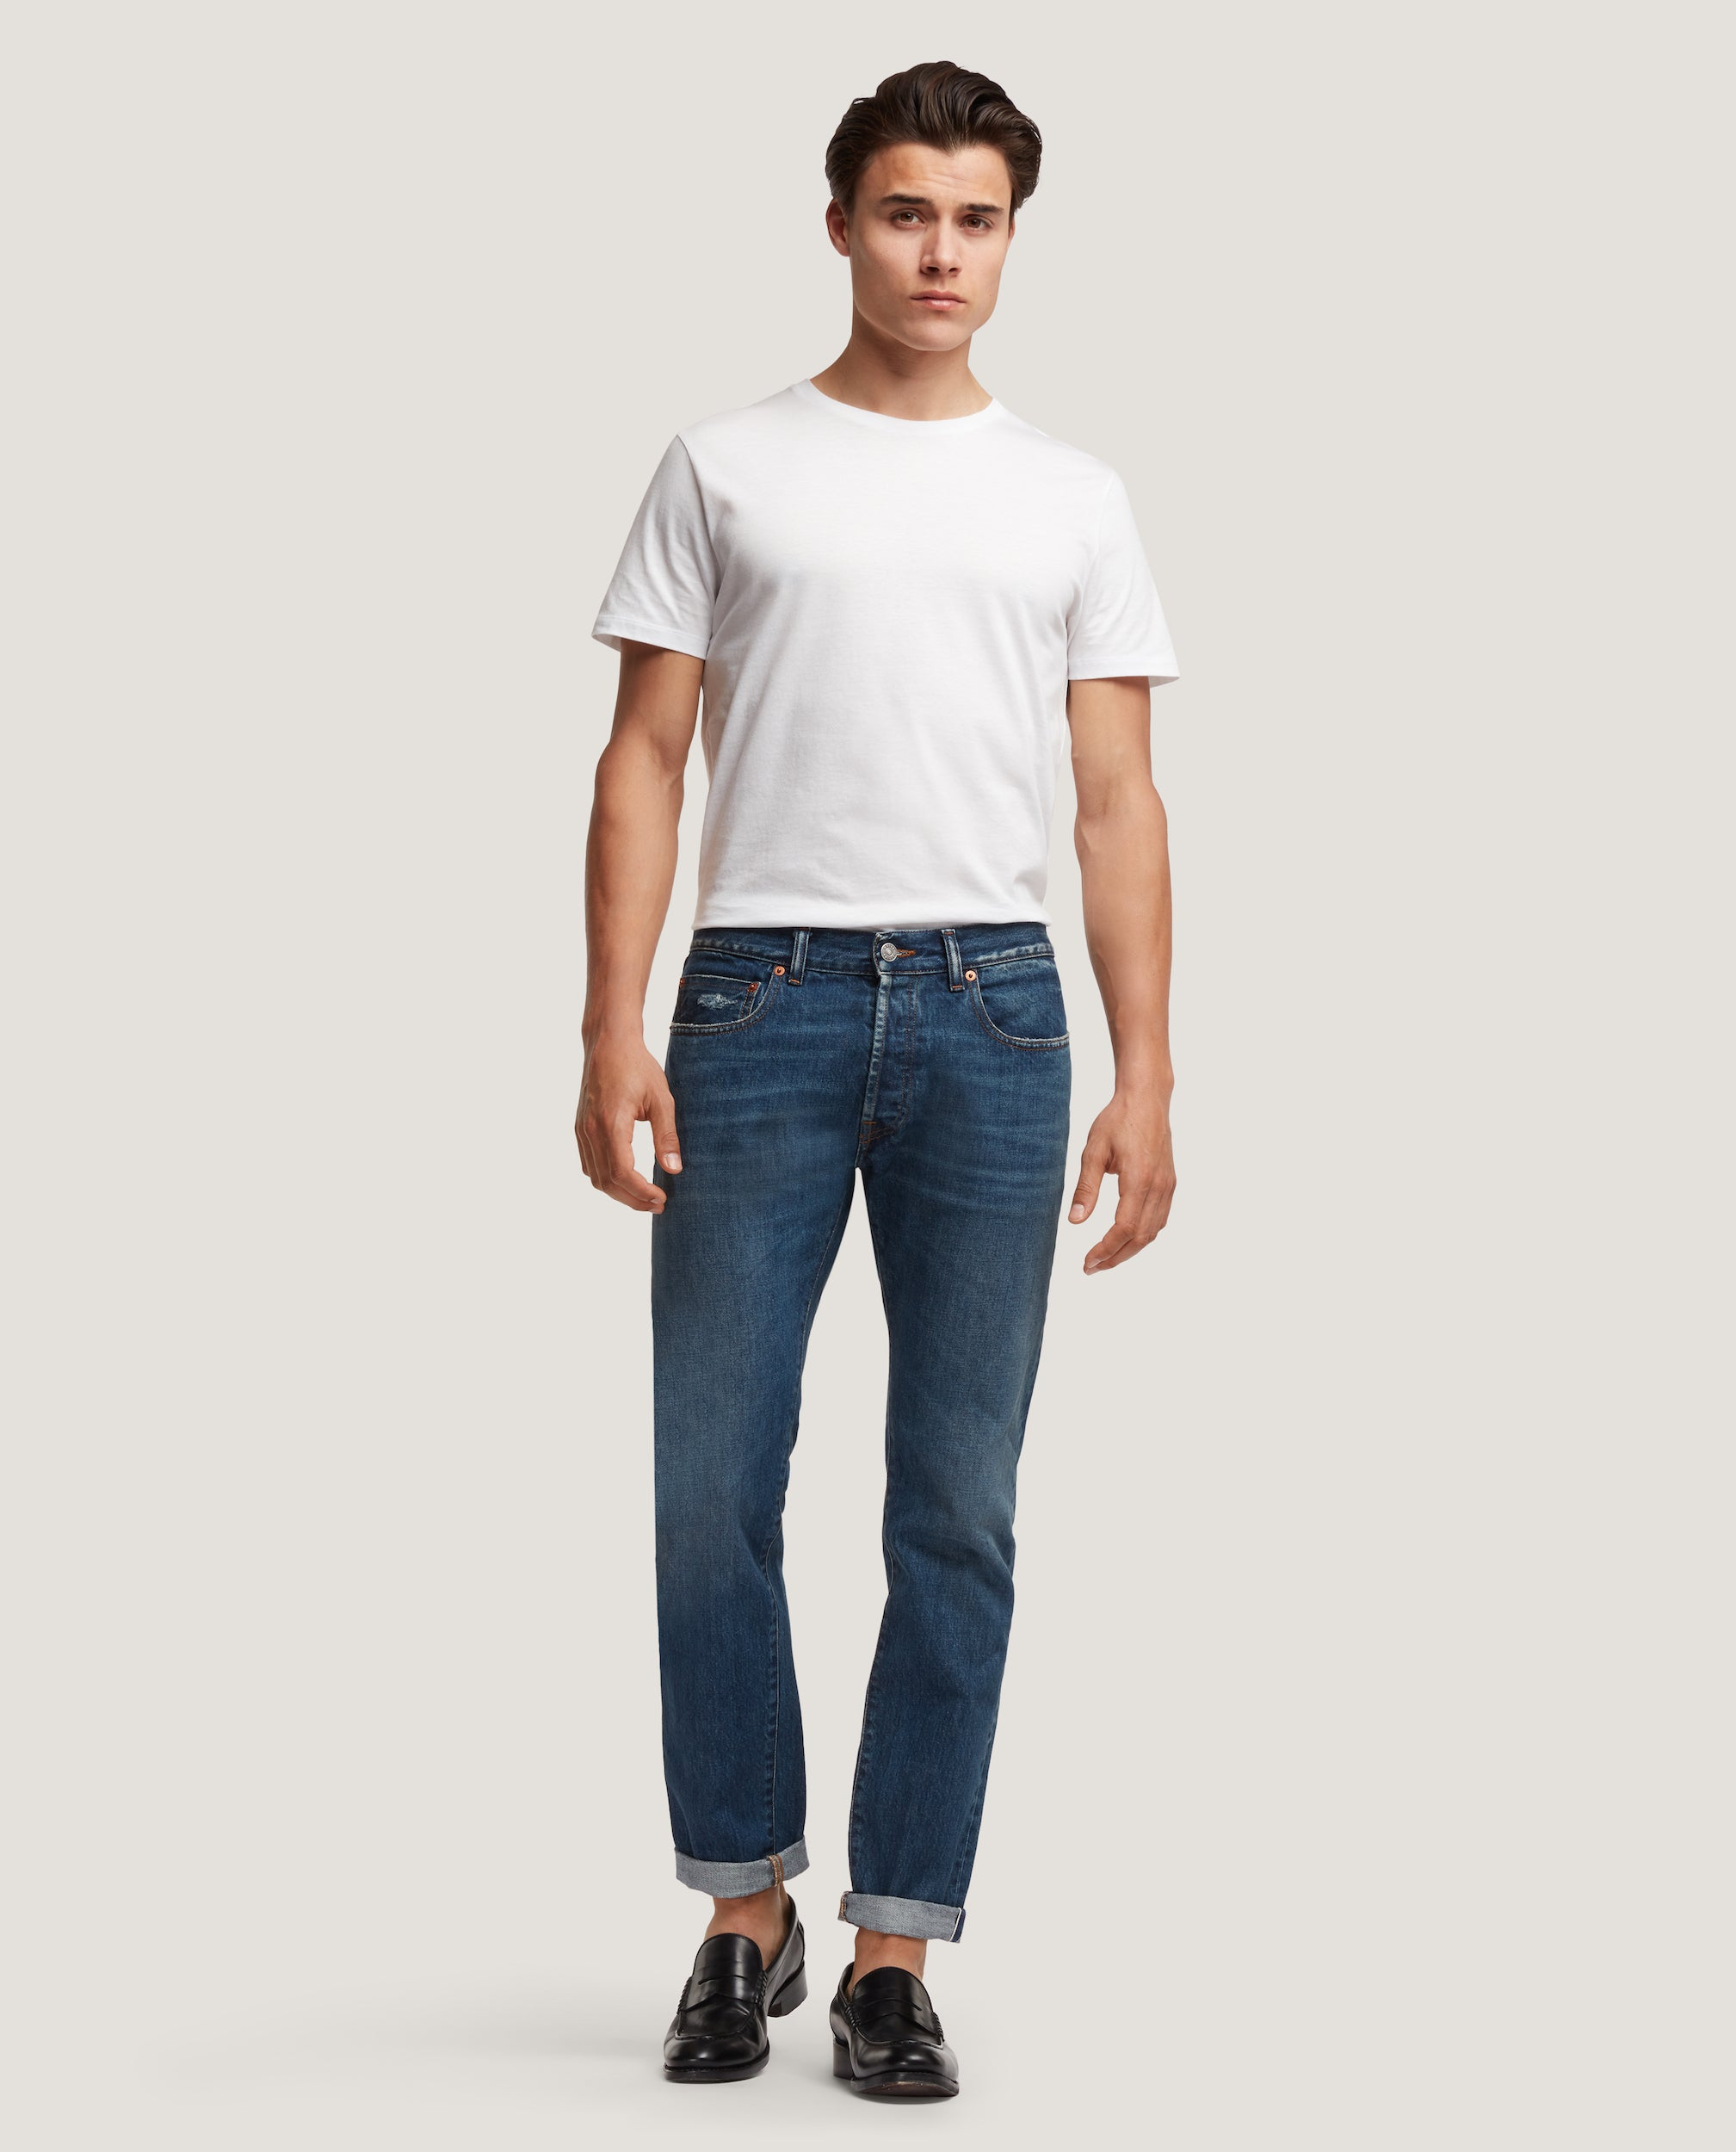 LEWITT Regular-slim fit jeans | Blue distressed selvedge